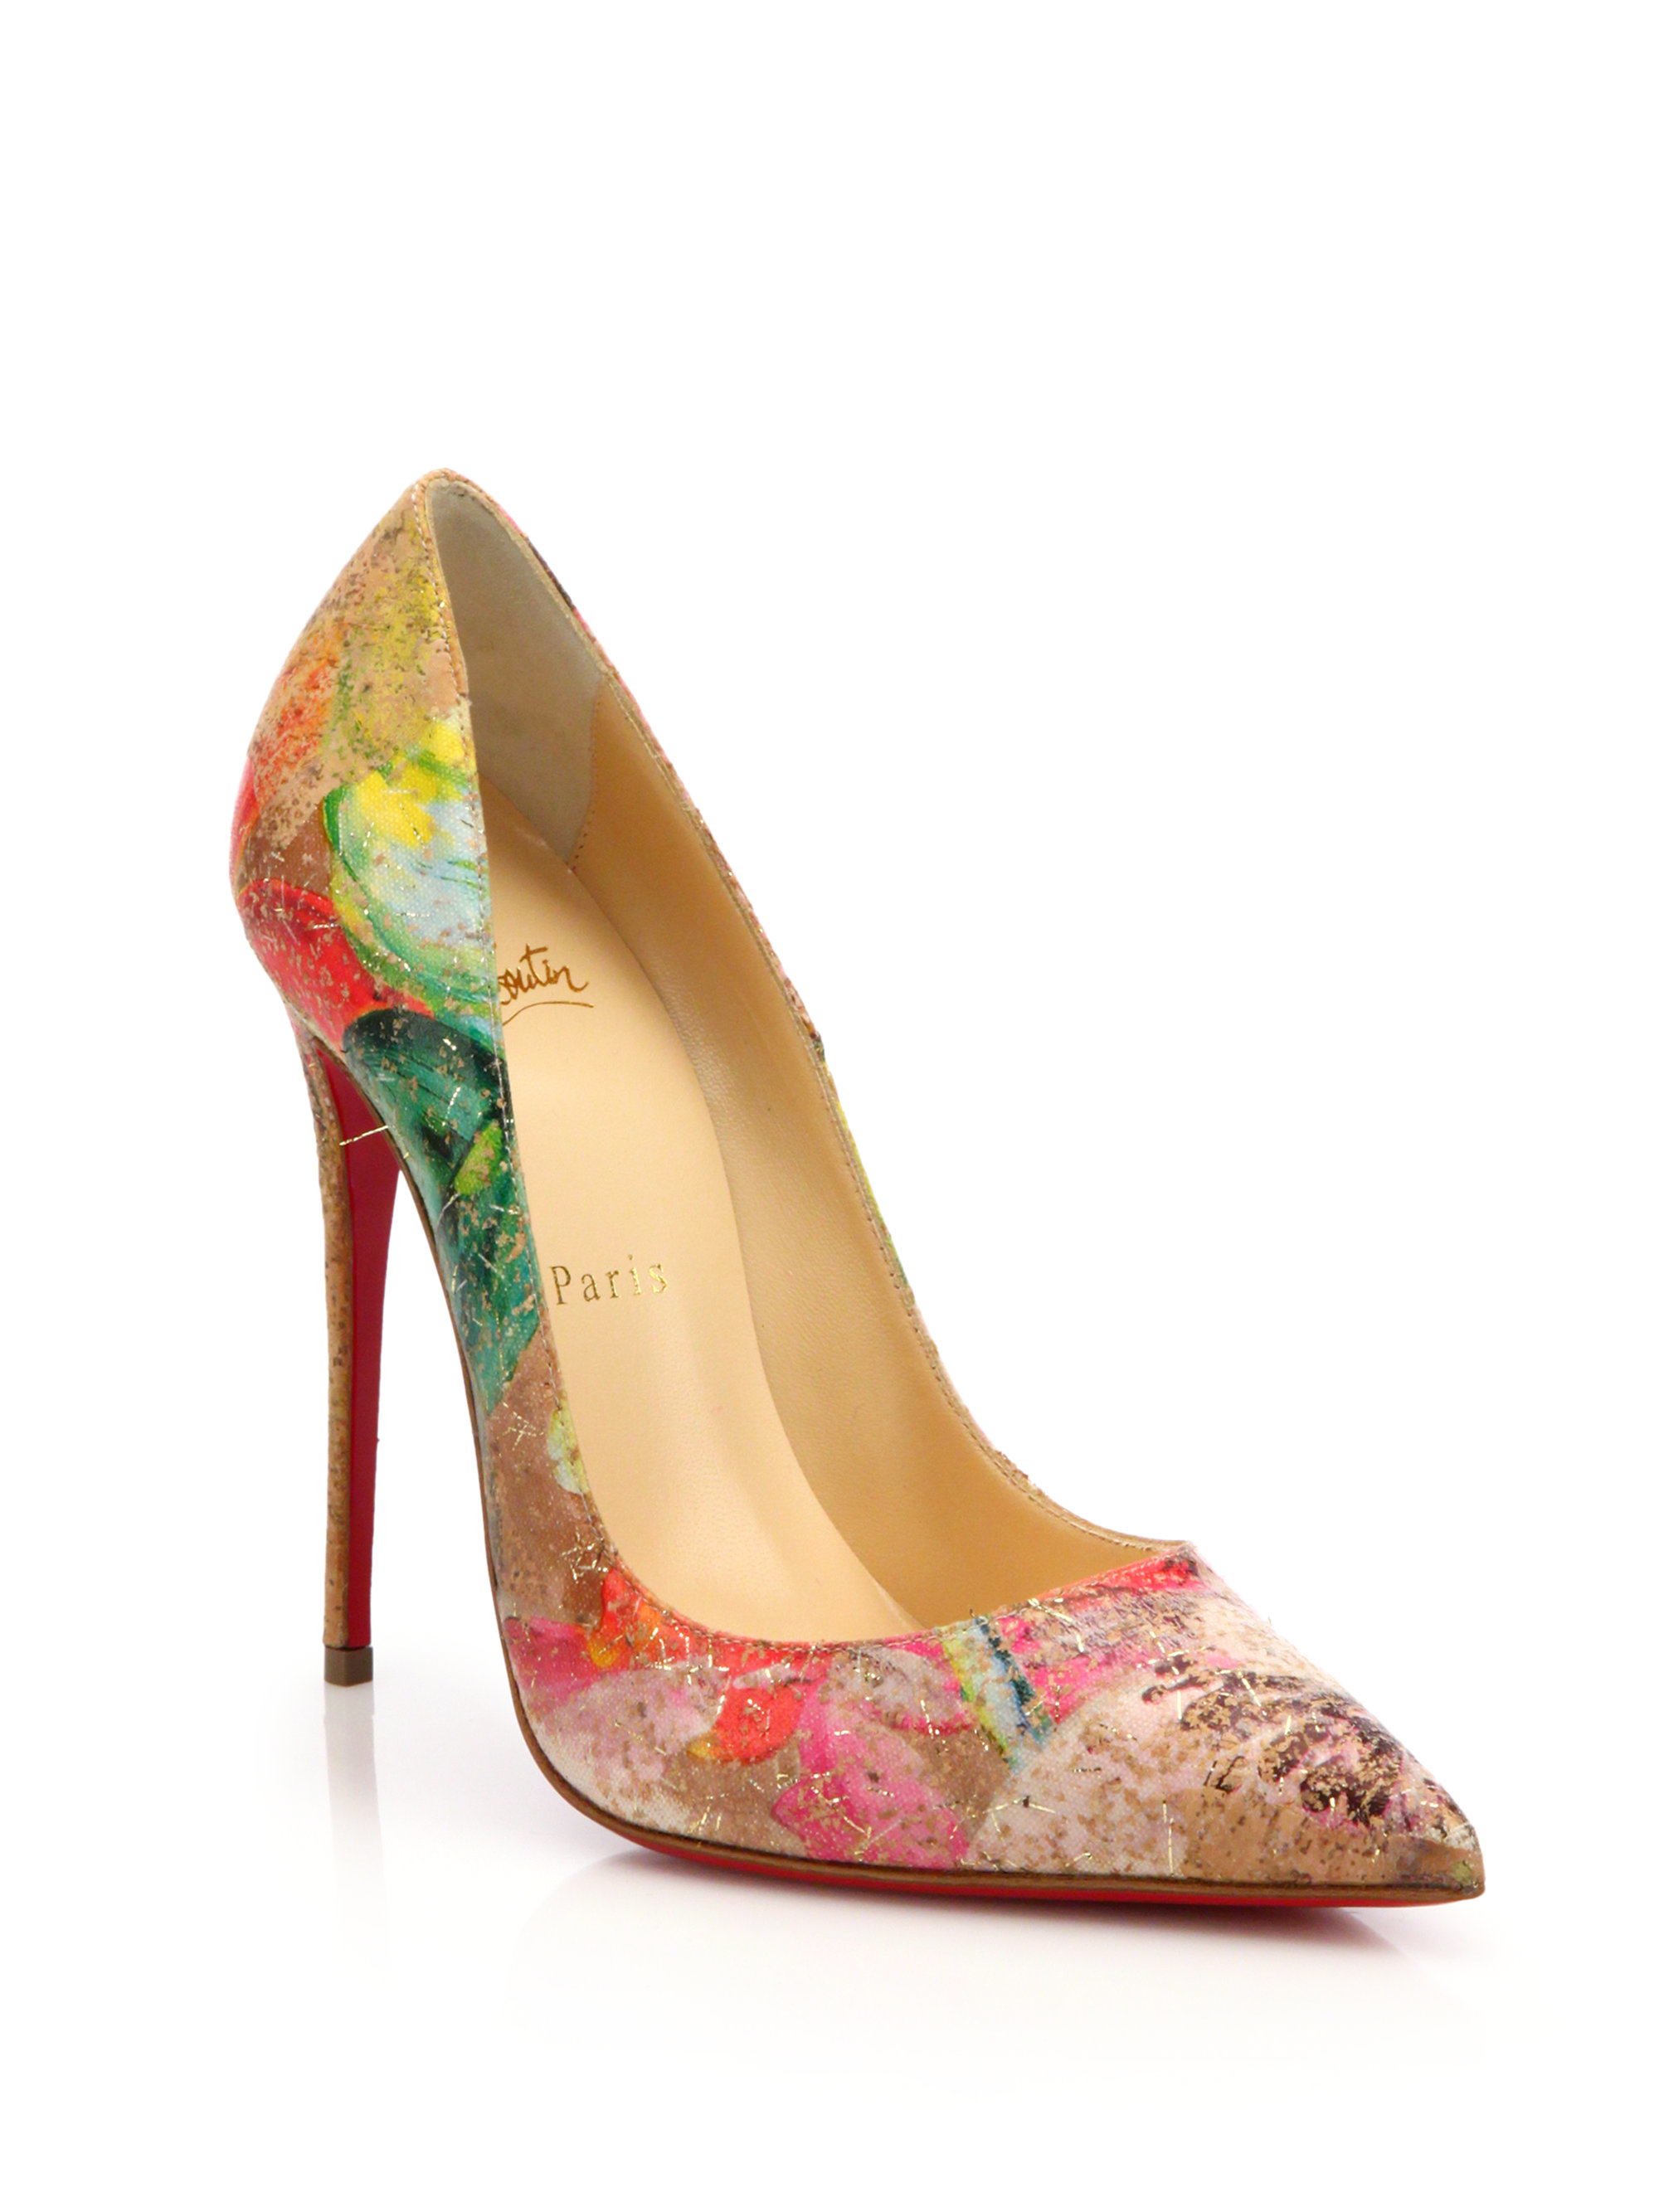 c340a7b371a1 Gallery. Previously sold at  Saks Fifth Avenue · Women s Christian  Louboutin So Kate ...